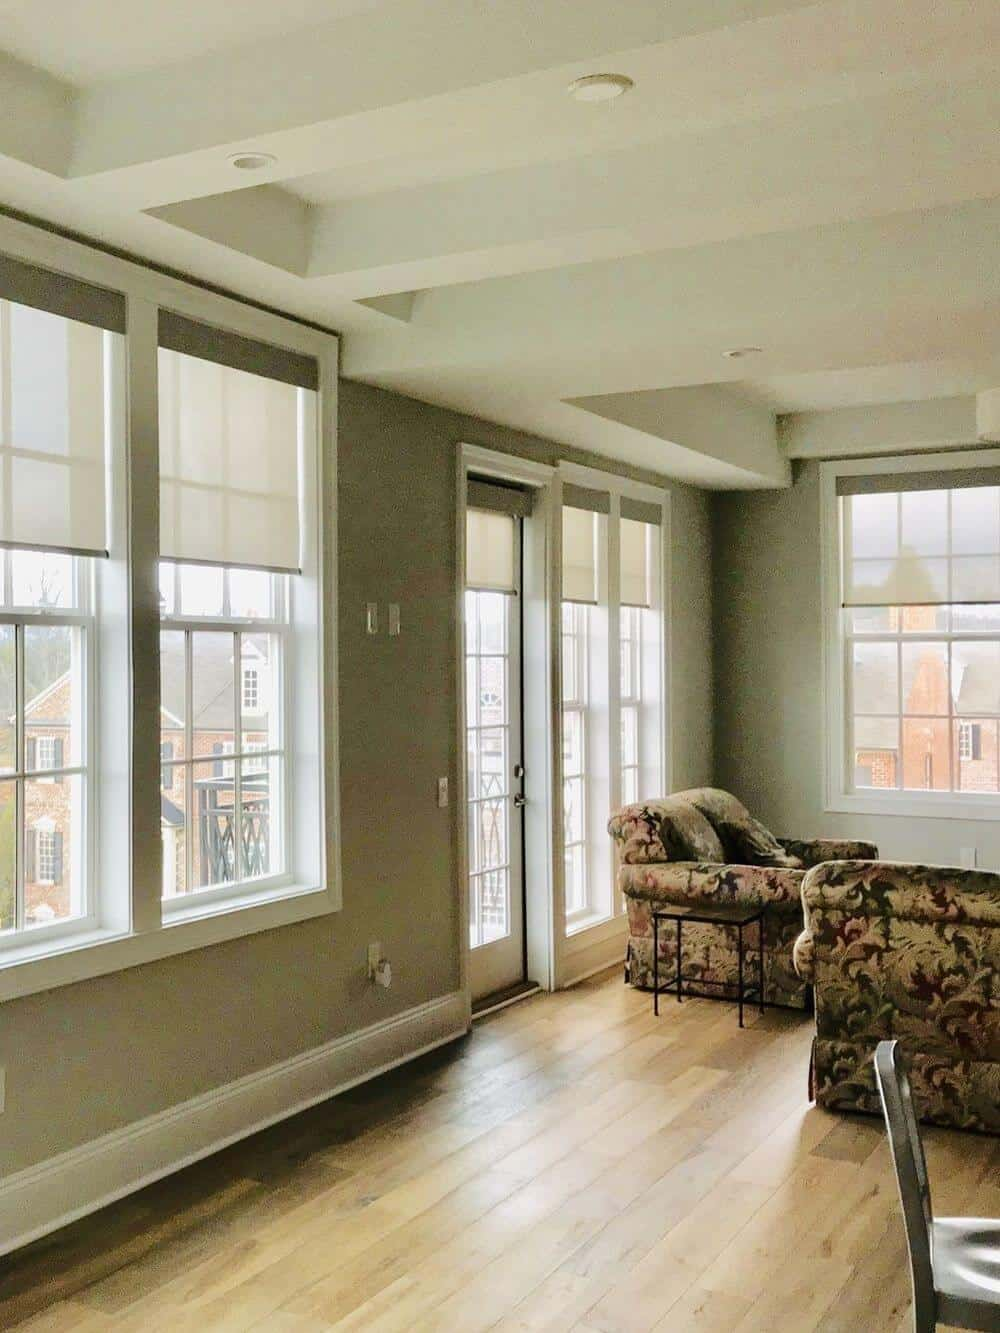 This great room boasts a set of elegant living space seats and a dining table set nearby. The room has a stunning white custom ceiling and gray walls, along with hardwood flooring.